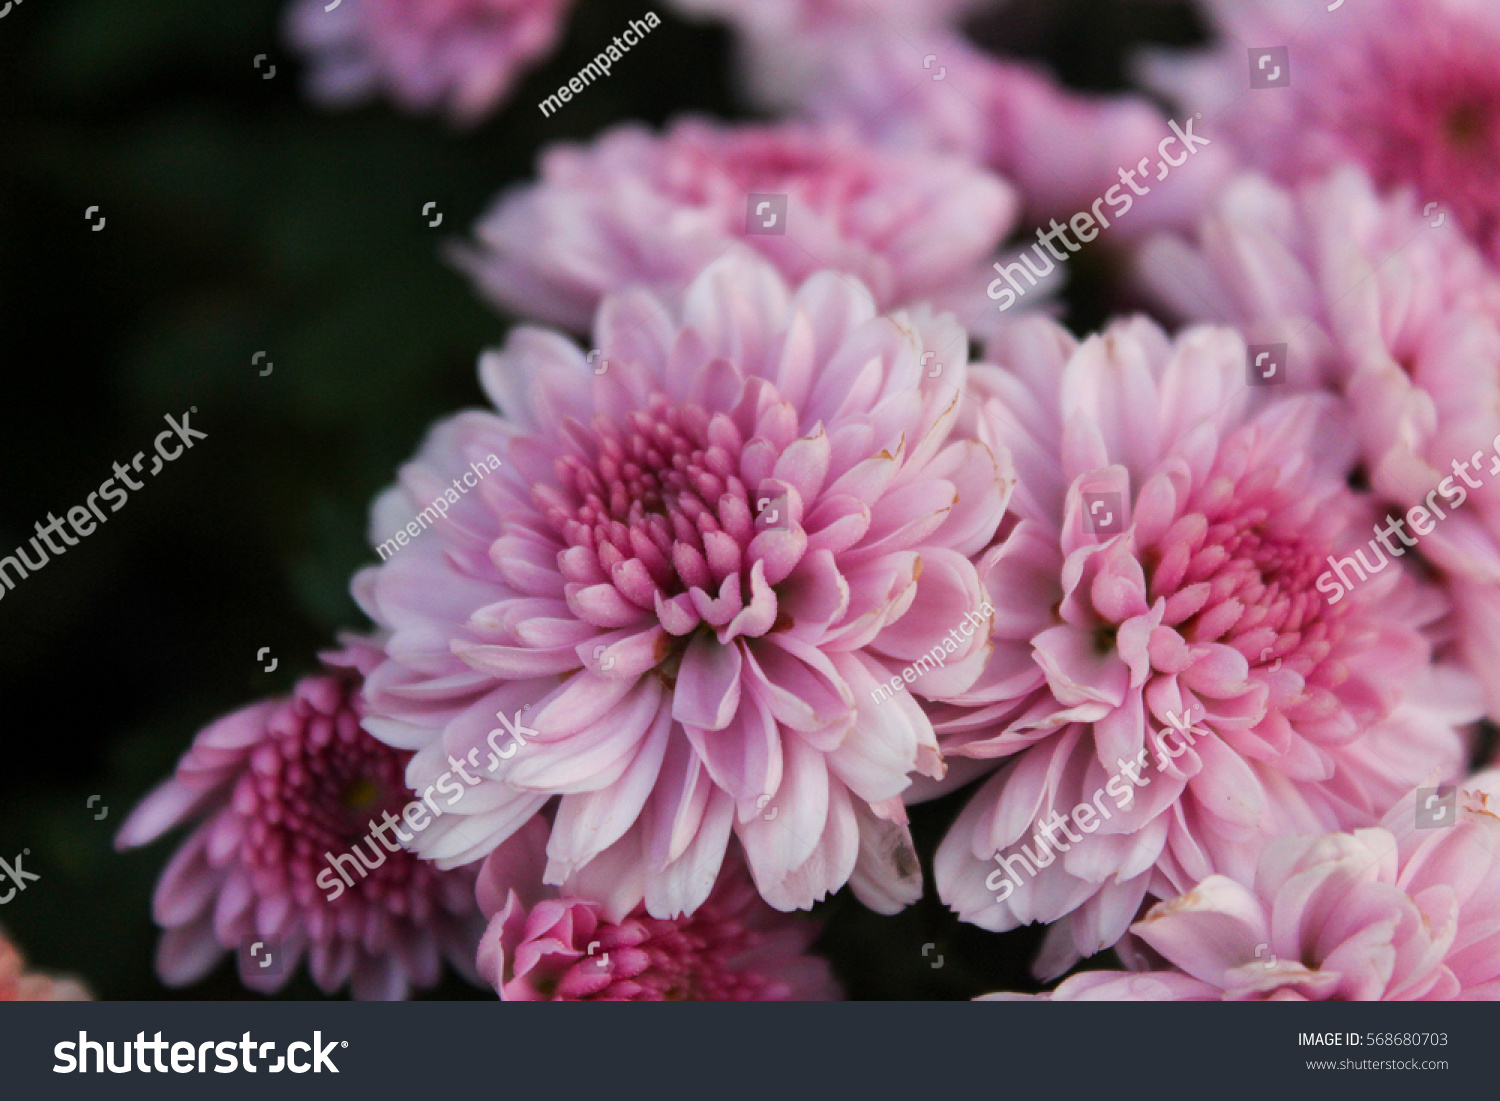 These Pink White Flowers Called Chrysanthemum Stock Photo Edit Now